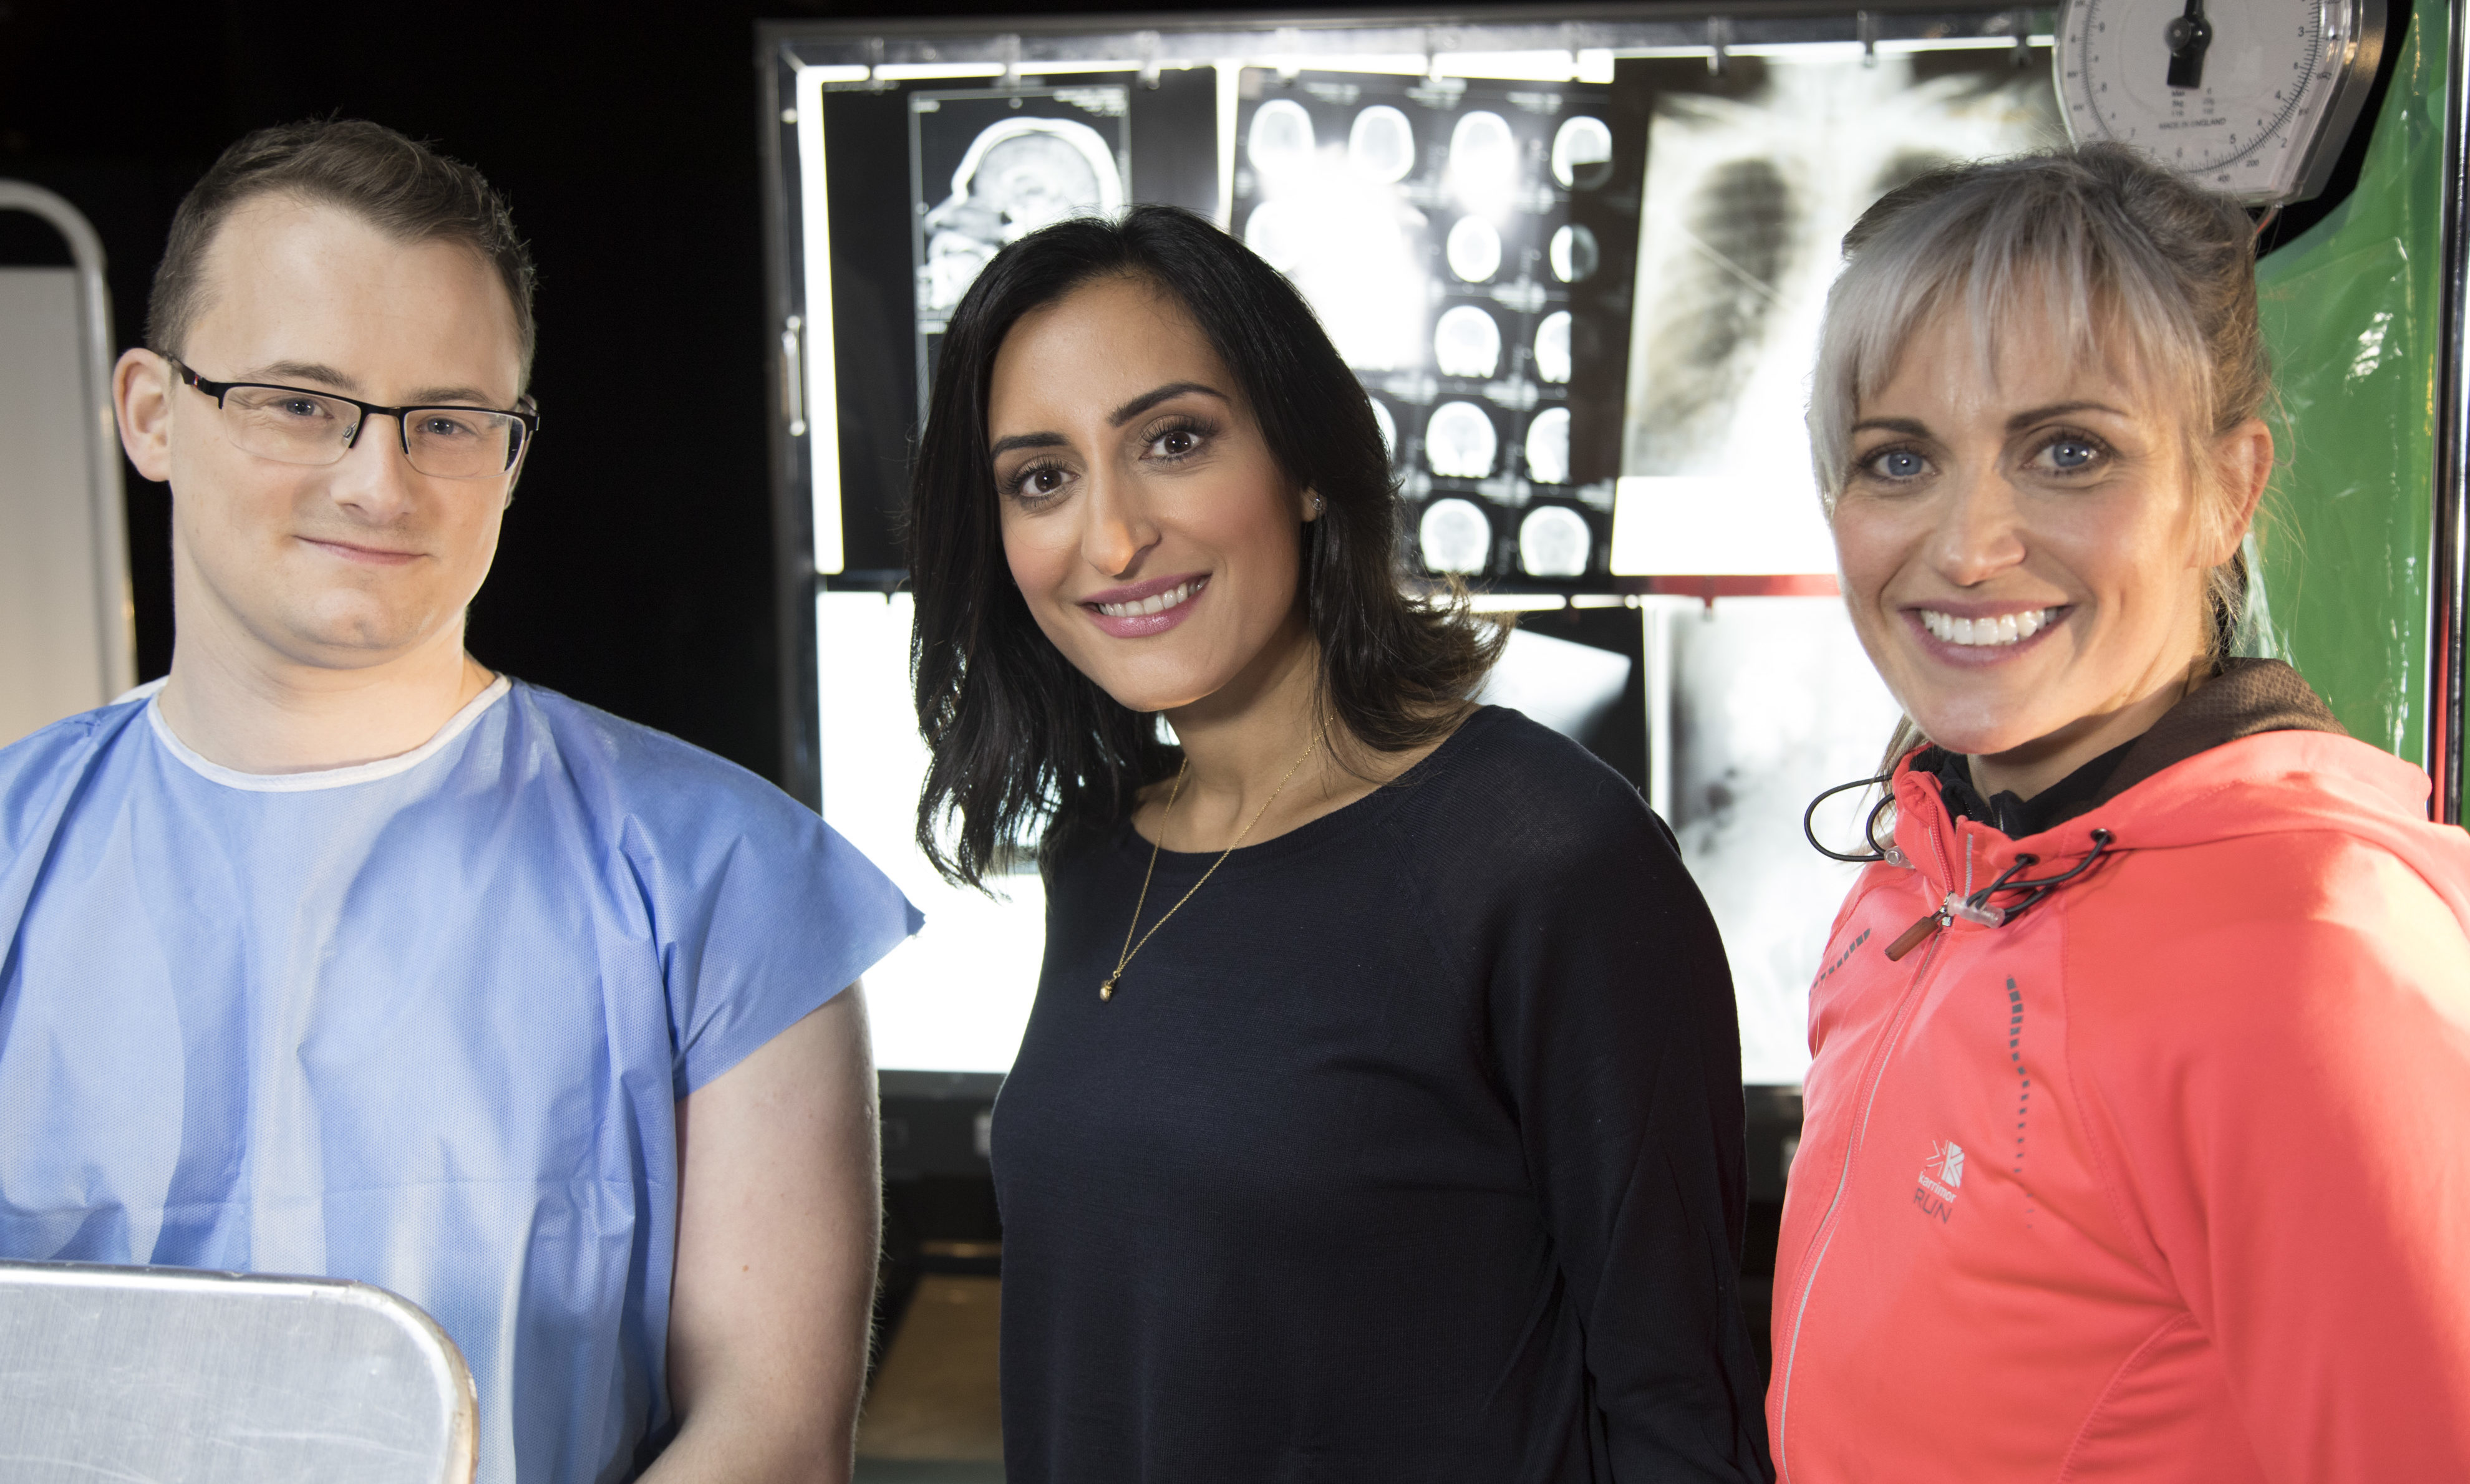 Ryan O'Connor from Airdrie with Dr Punam Krishan and Marie Ladbrook from Montrose.